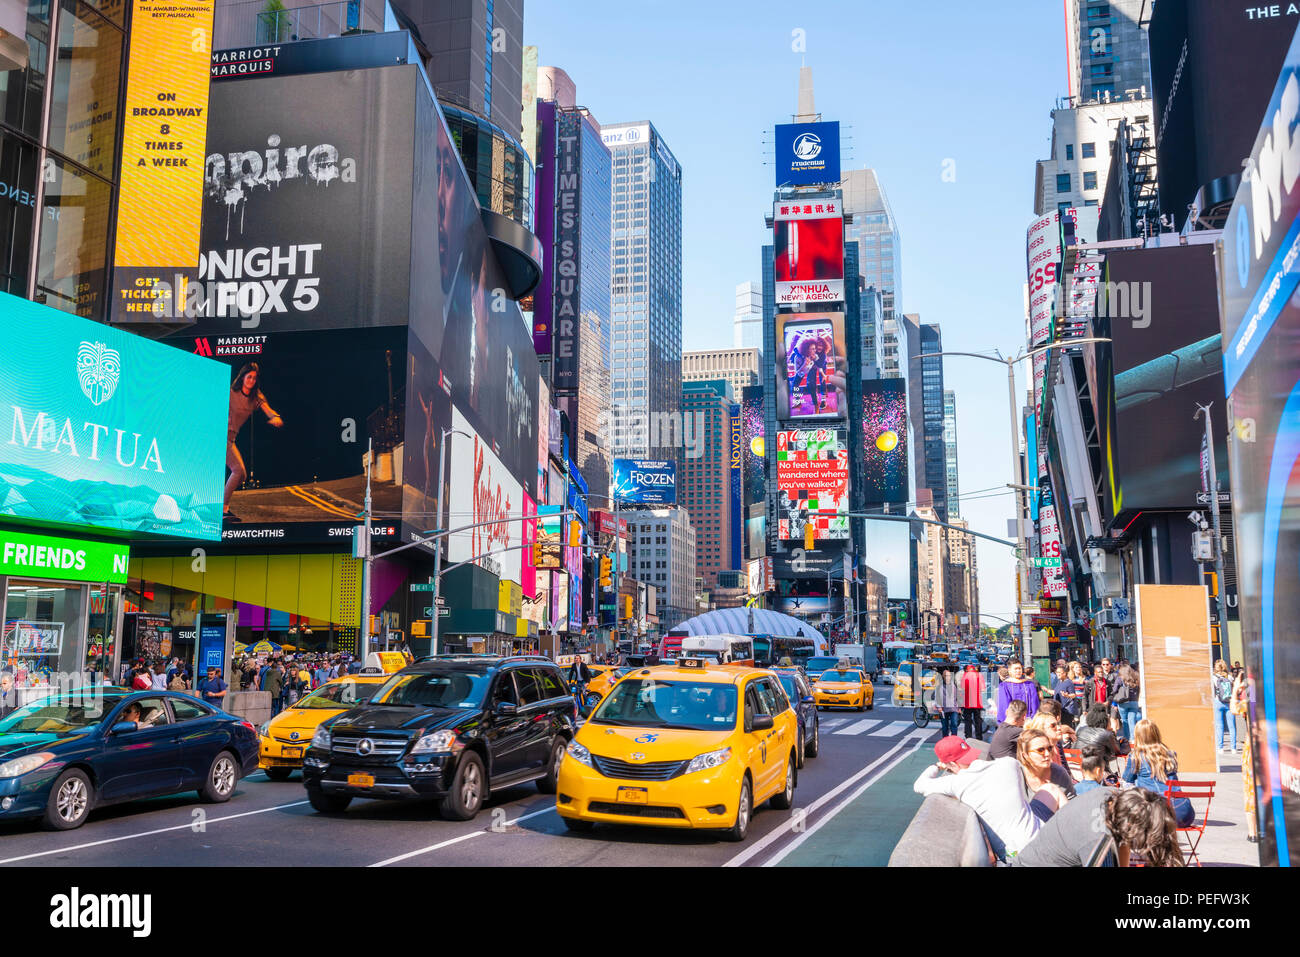 People and traffic at Times Square in New York City - Stock Image